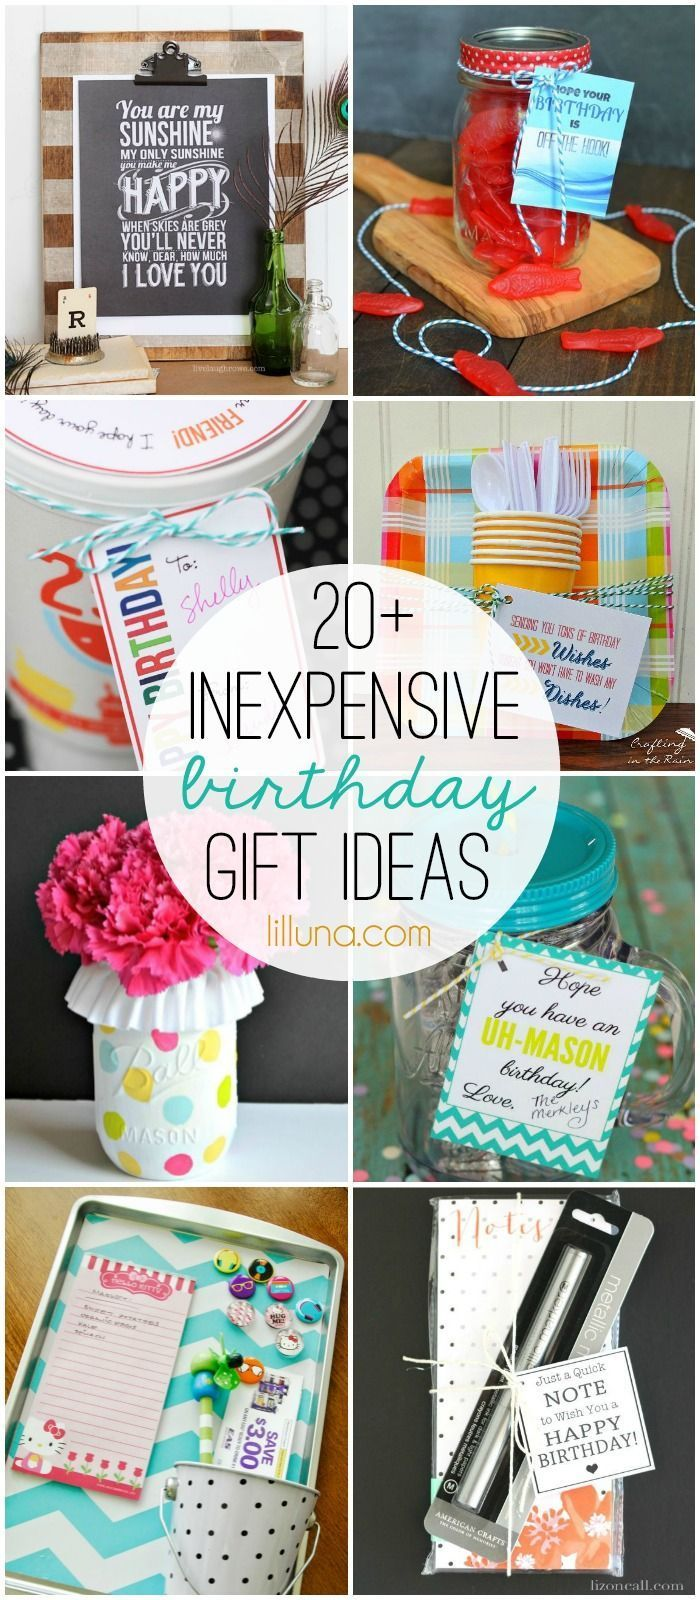 Inexpensive Birthday Gift Ideas | Gifts To Buy Or DIY | Pinterest ...